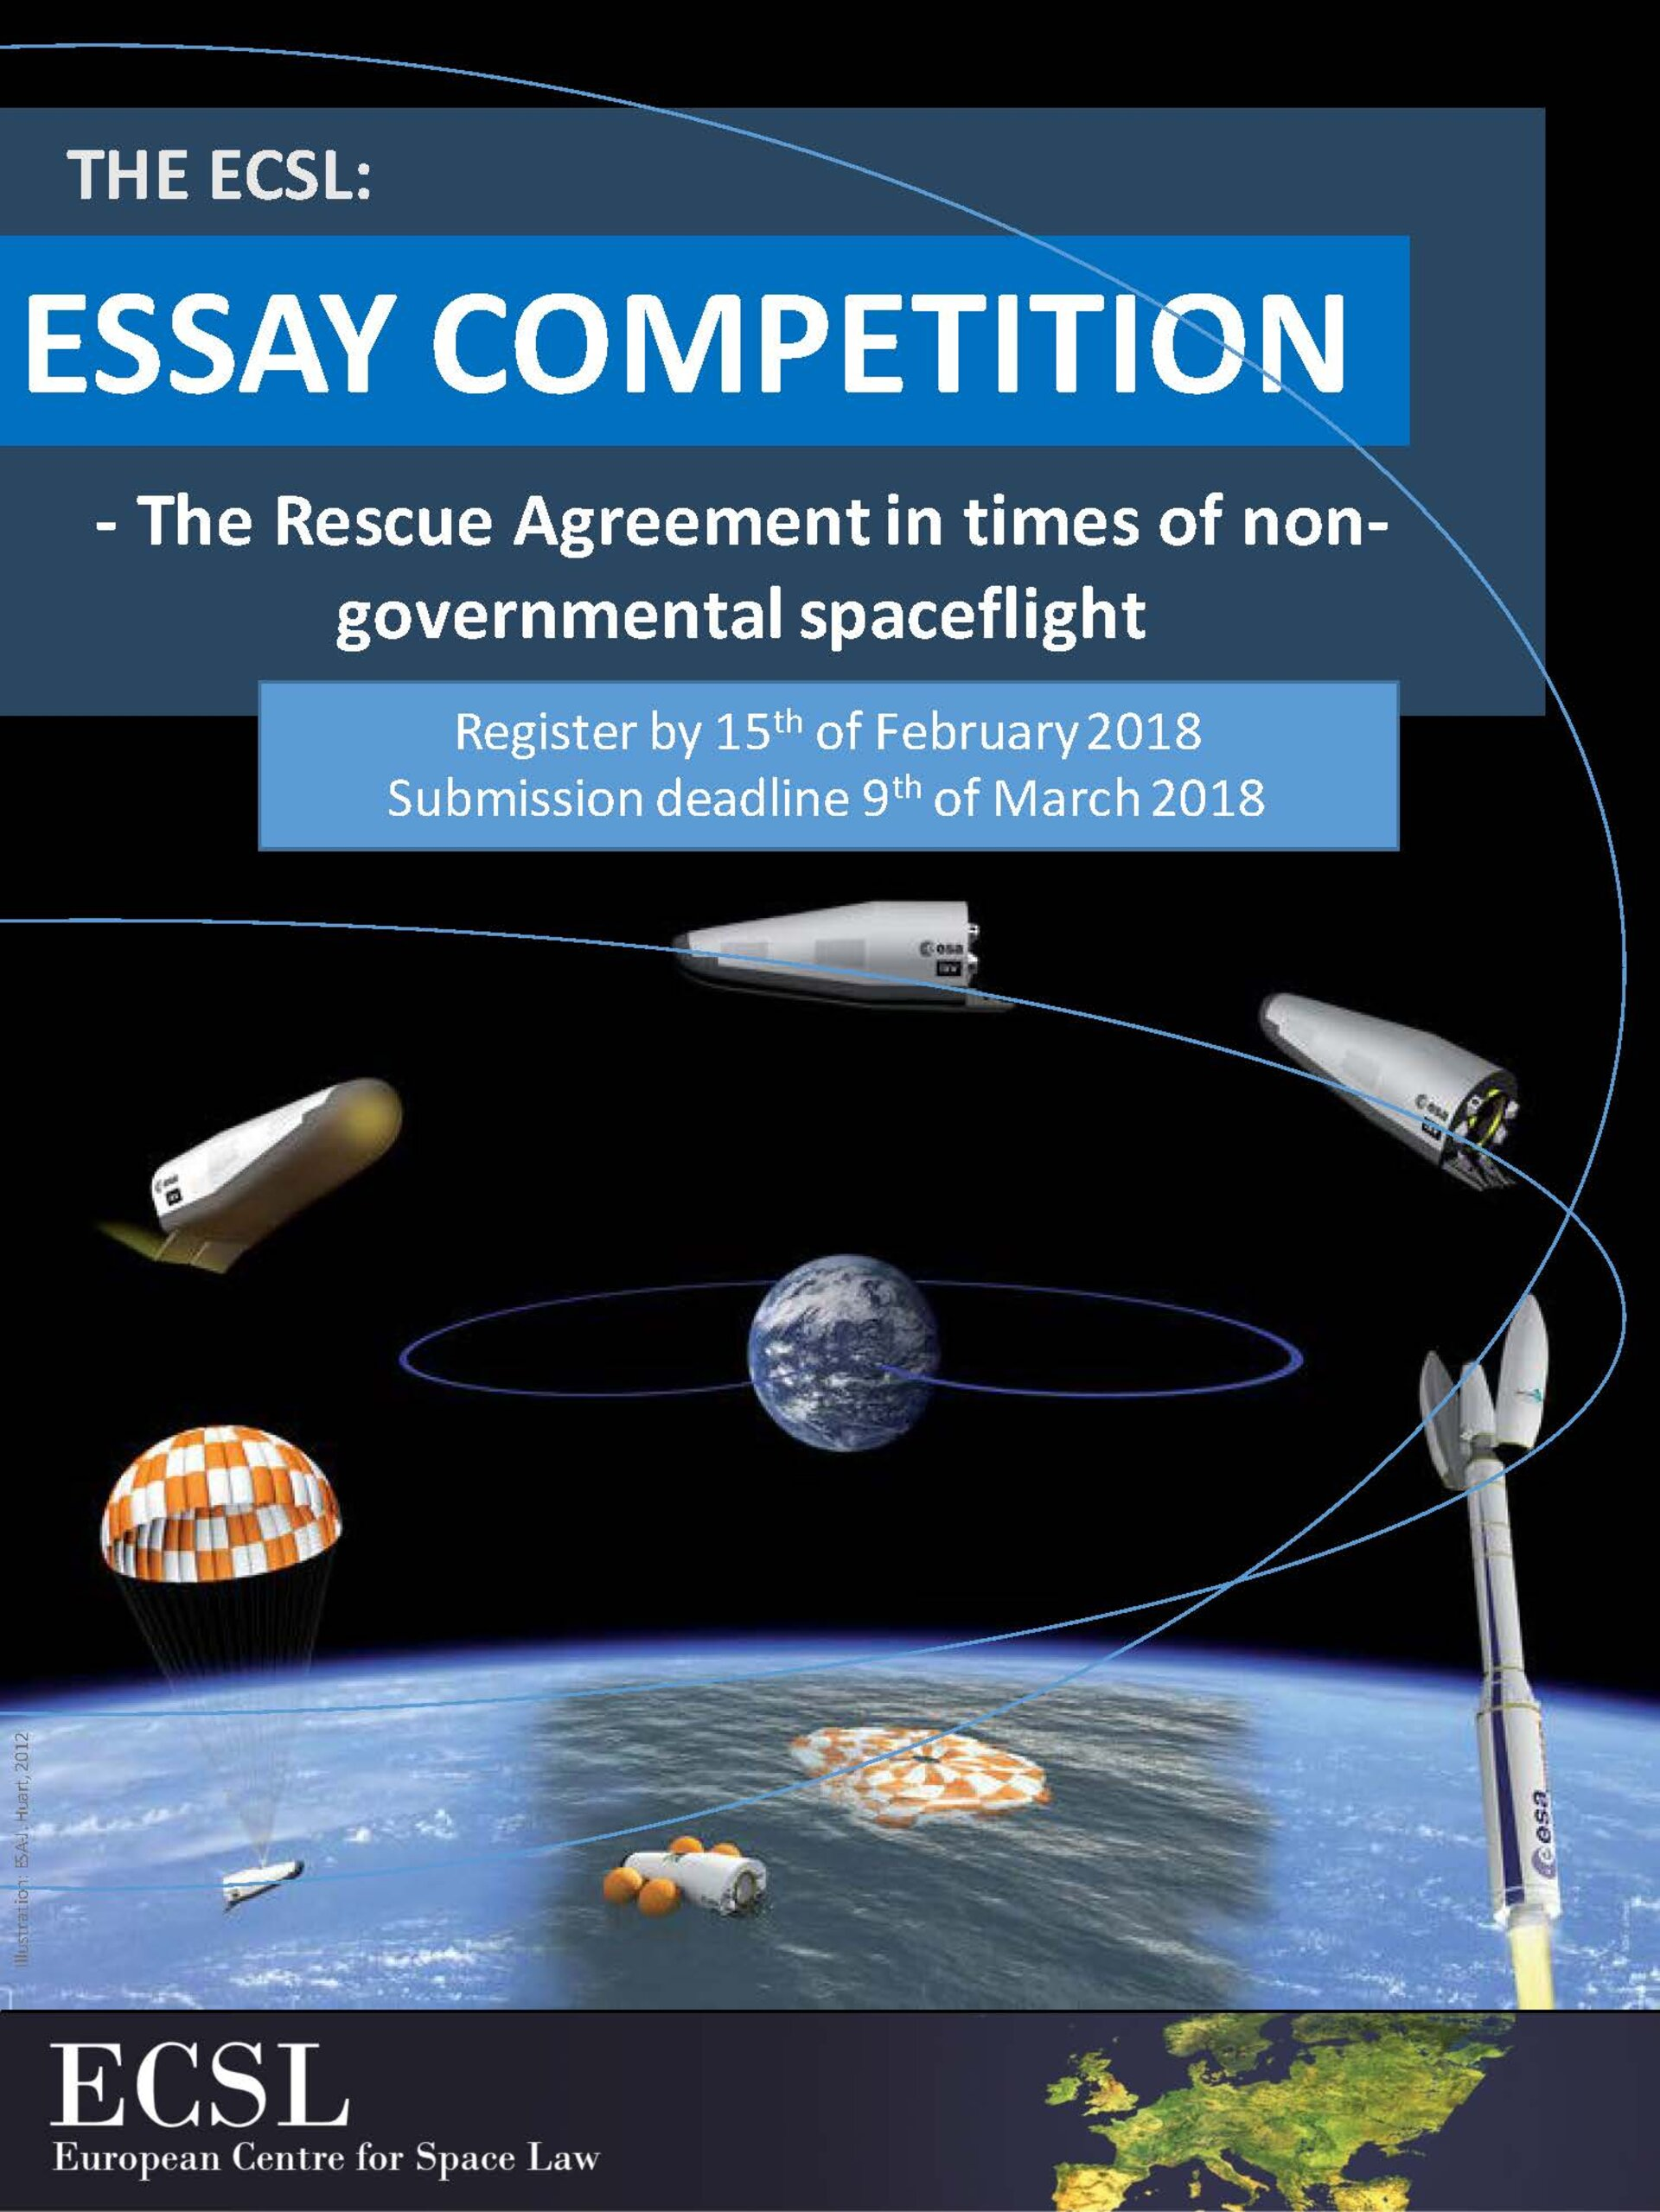 Essay competition poster